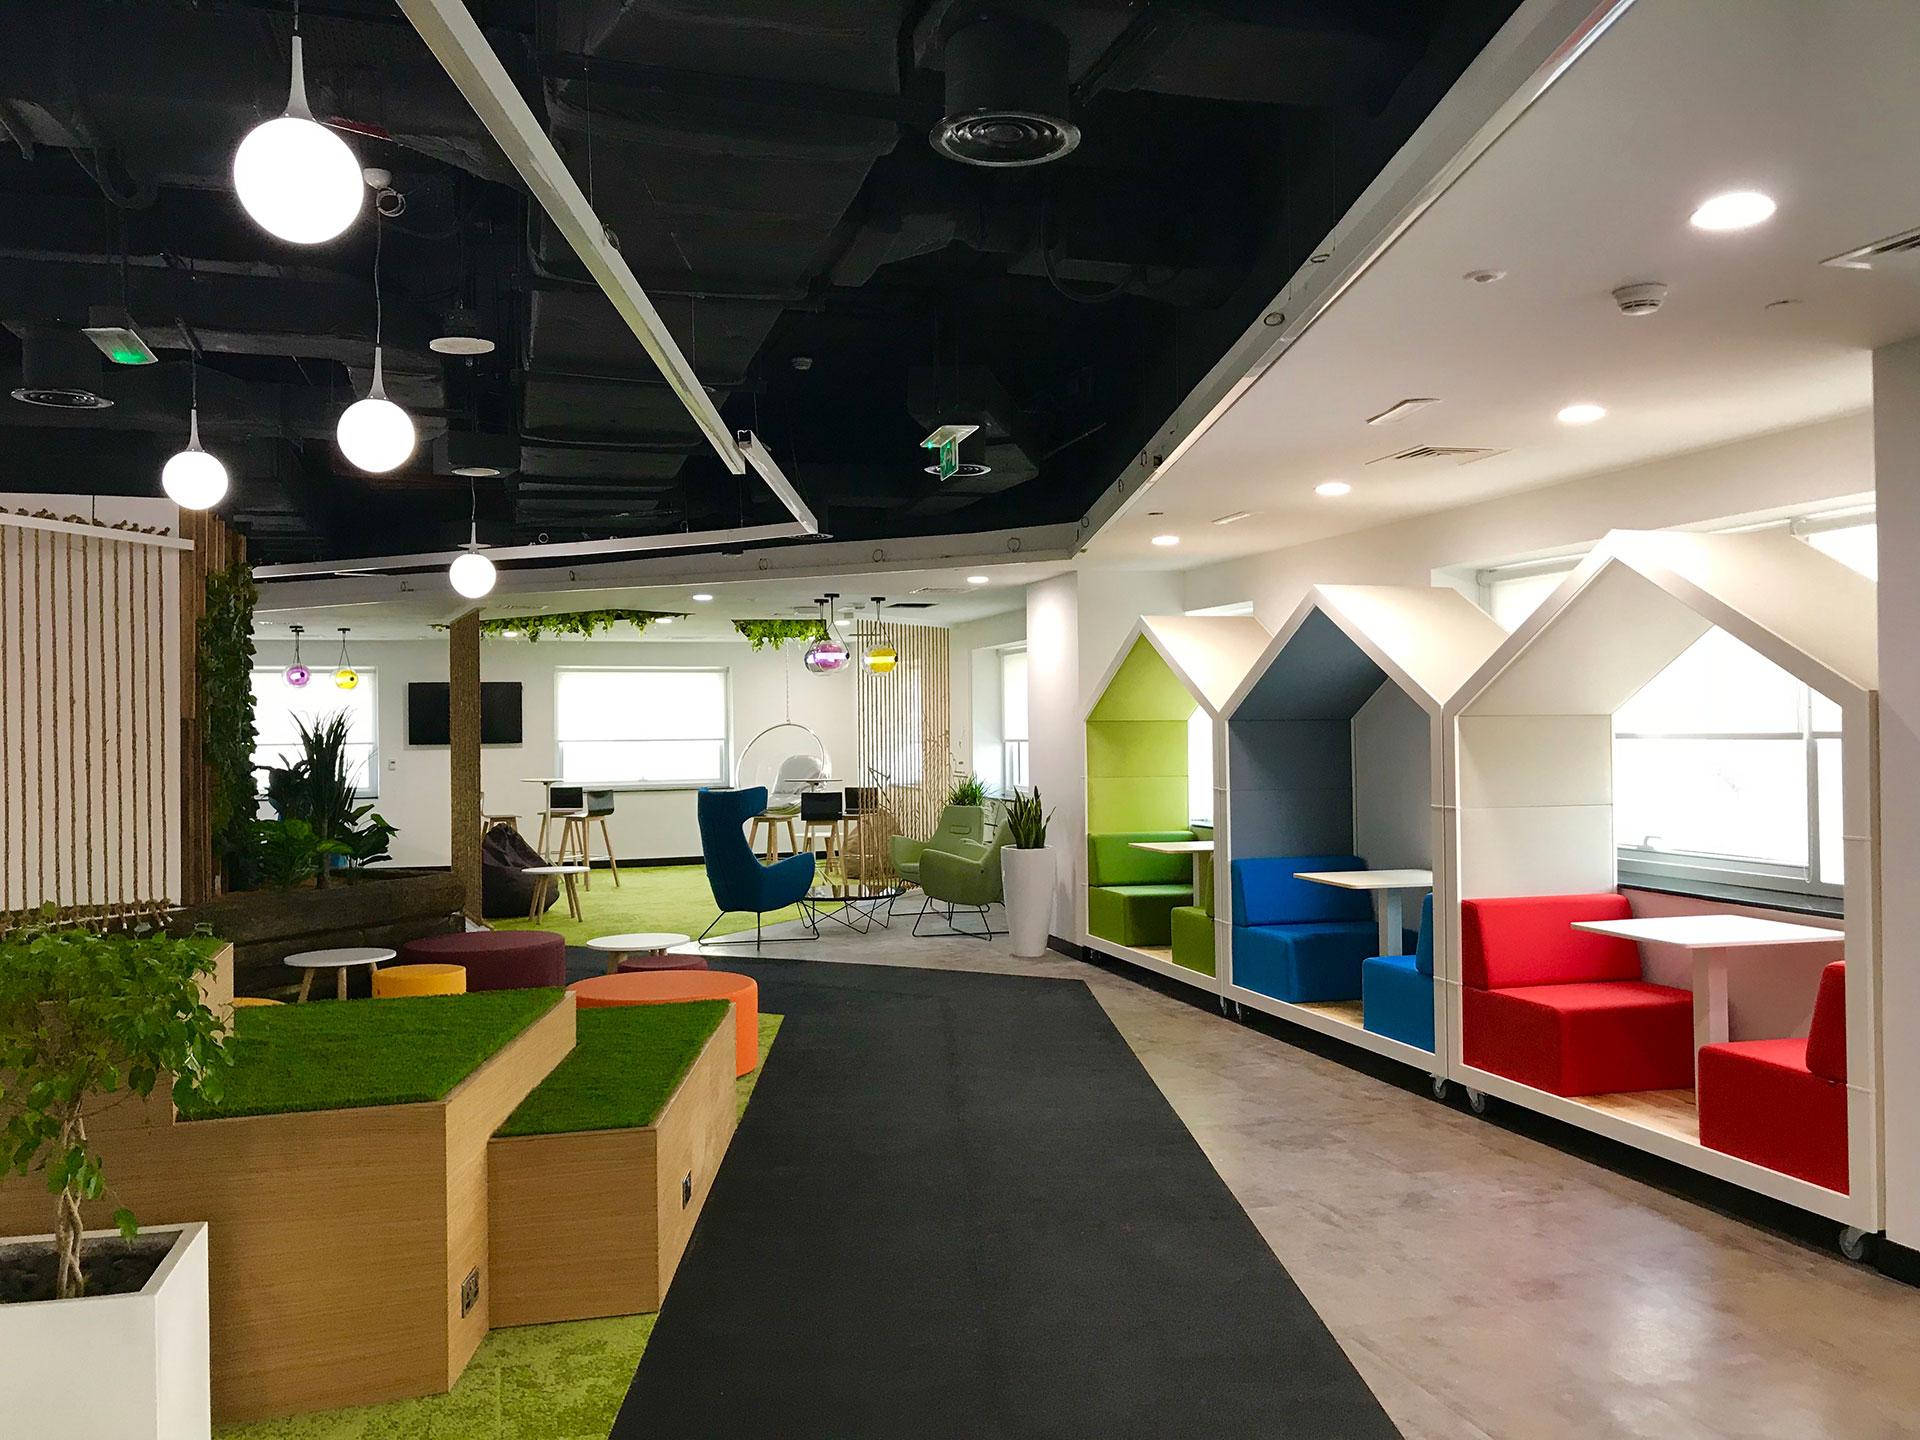 Home Office Design Dewa's New Office Featured Online With Commercial Interior